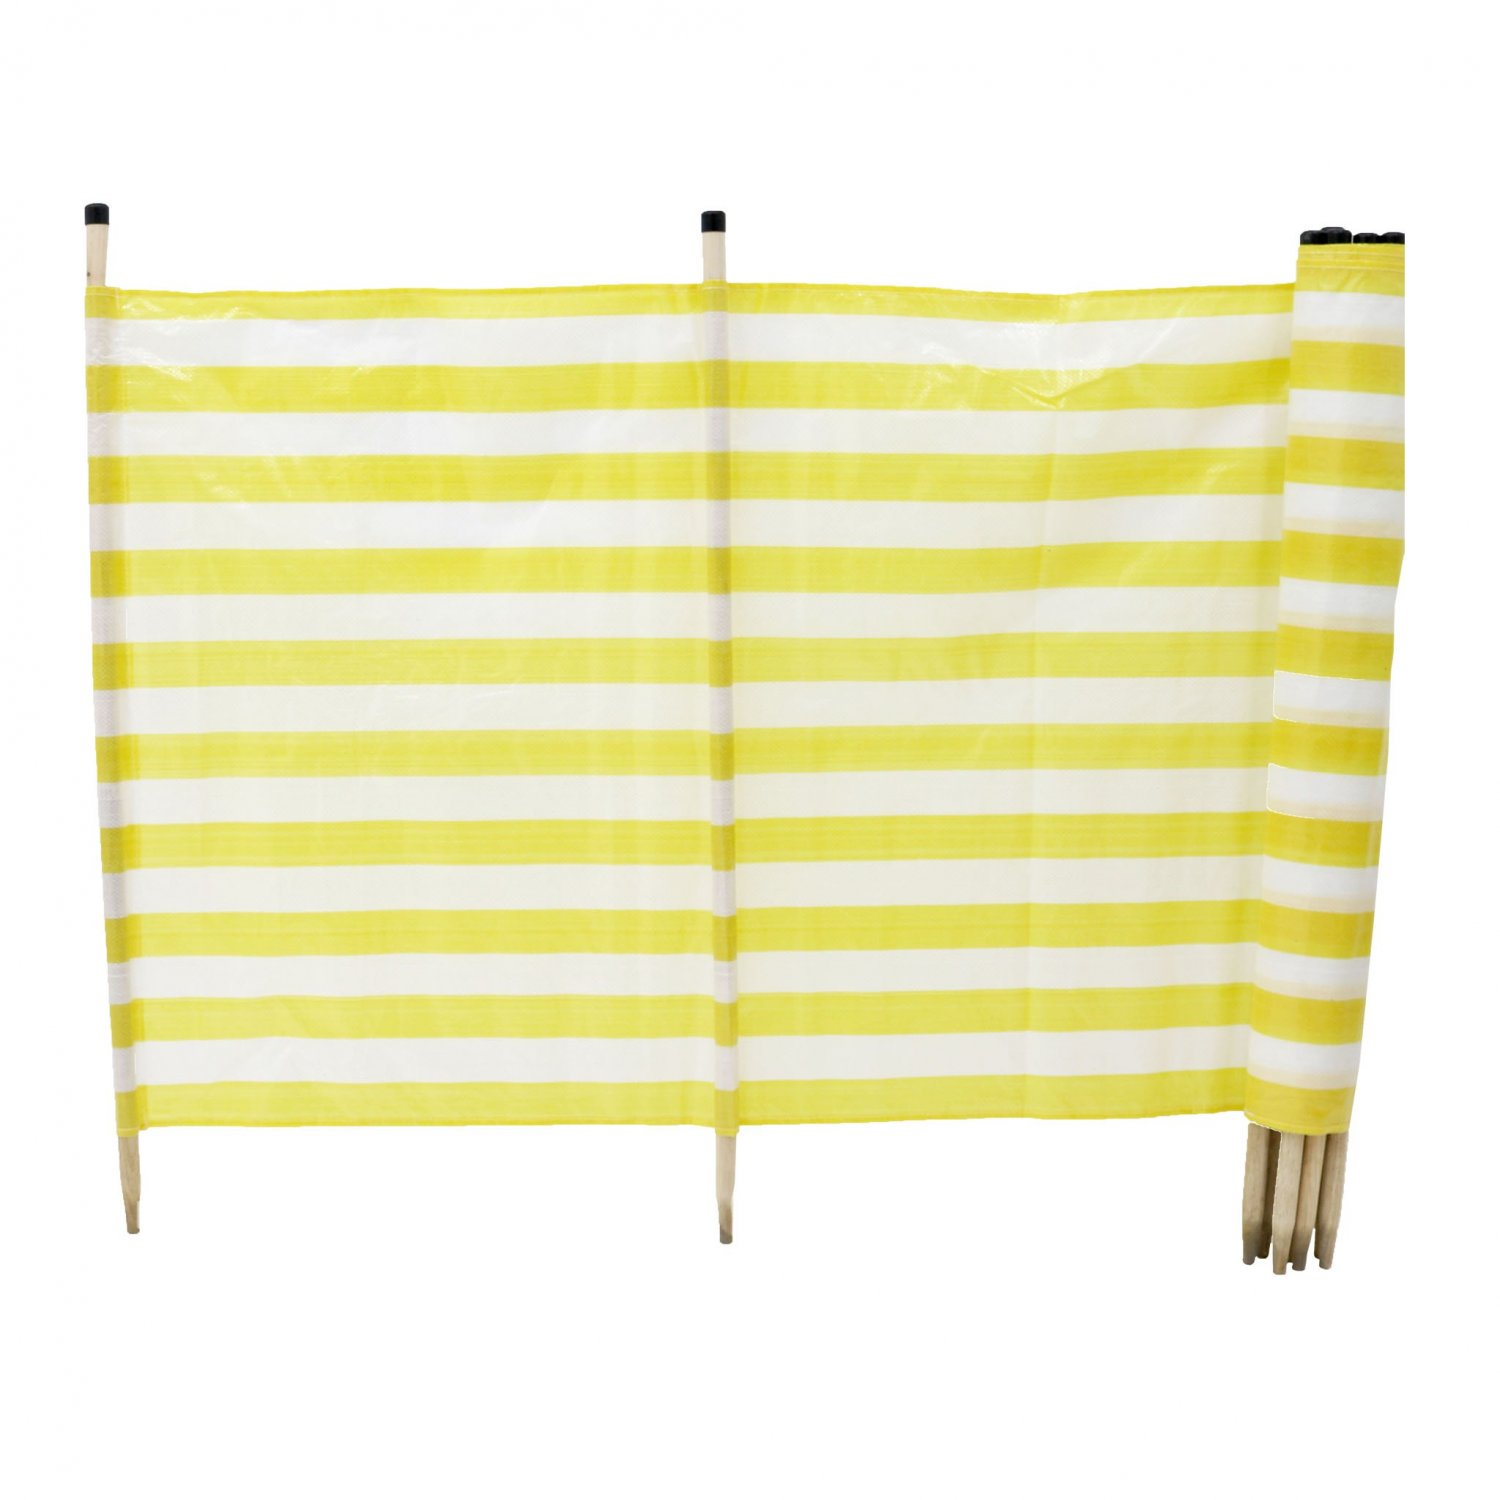 10 Pole Windbreak Beach Holiday Camping Caravan Windbreaker